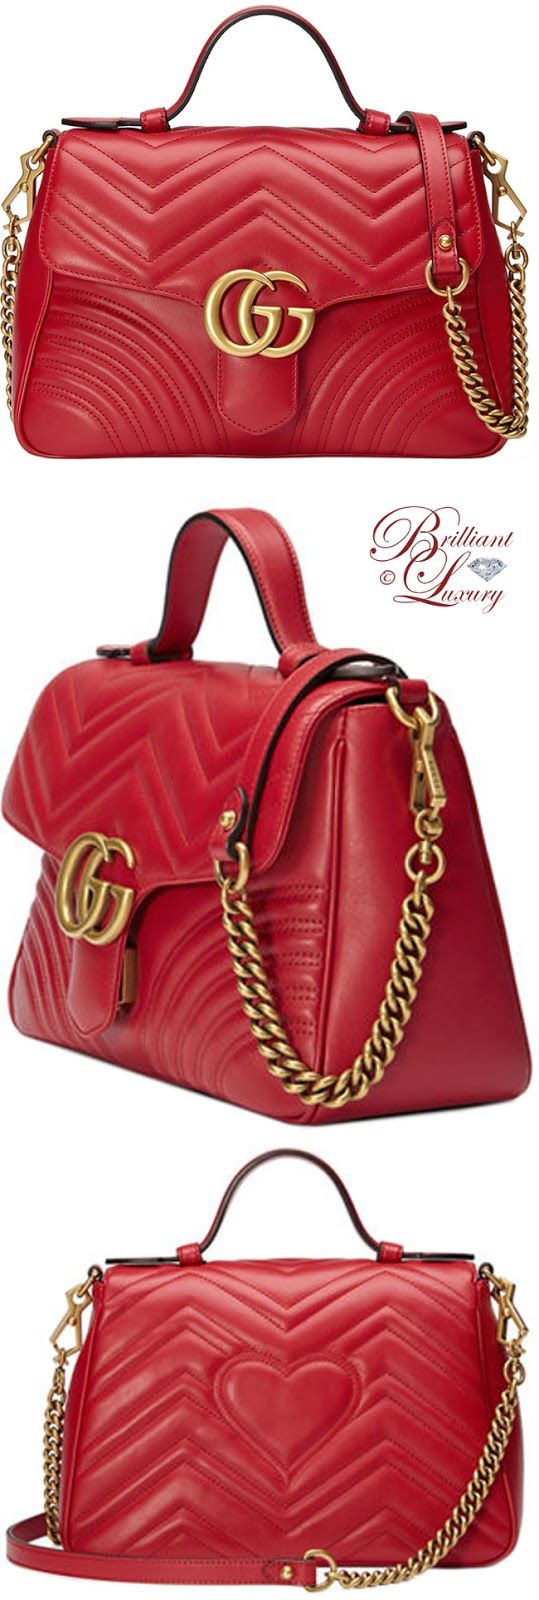 Brilliant Luxury ♦ Gucci GG Marmont Small Chevron Quilted Top-Handle Bag with Chain Strap